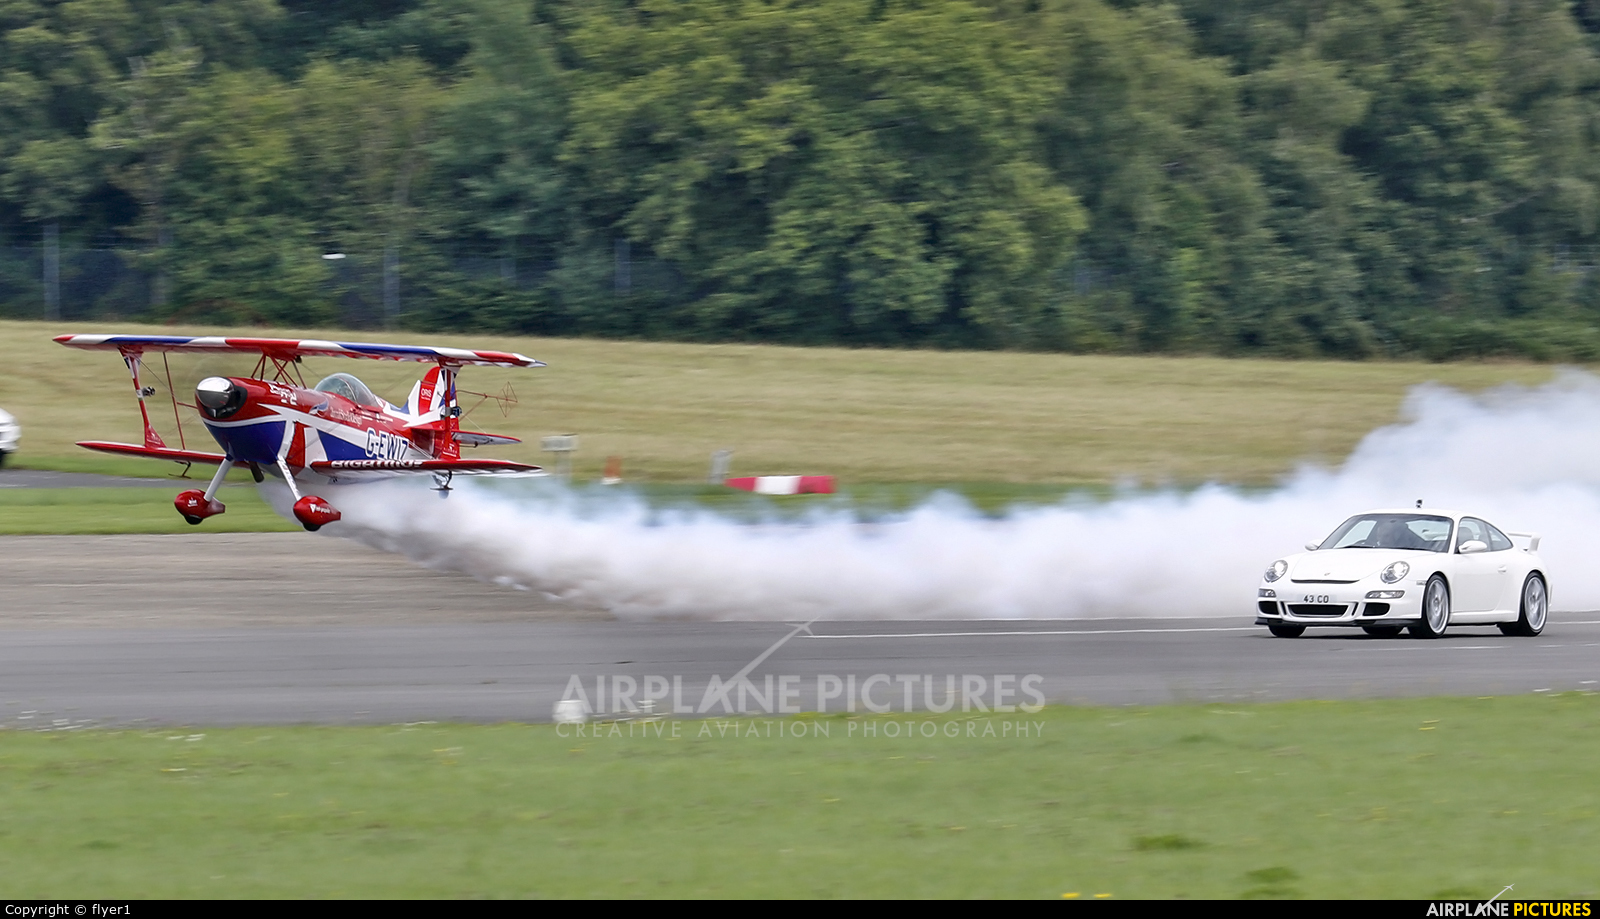 Rich Goodwin Airshows G-EWIZ aircraft at Dunsfold